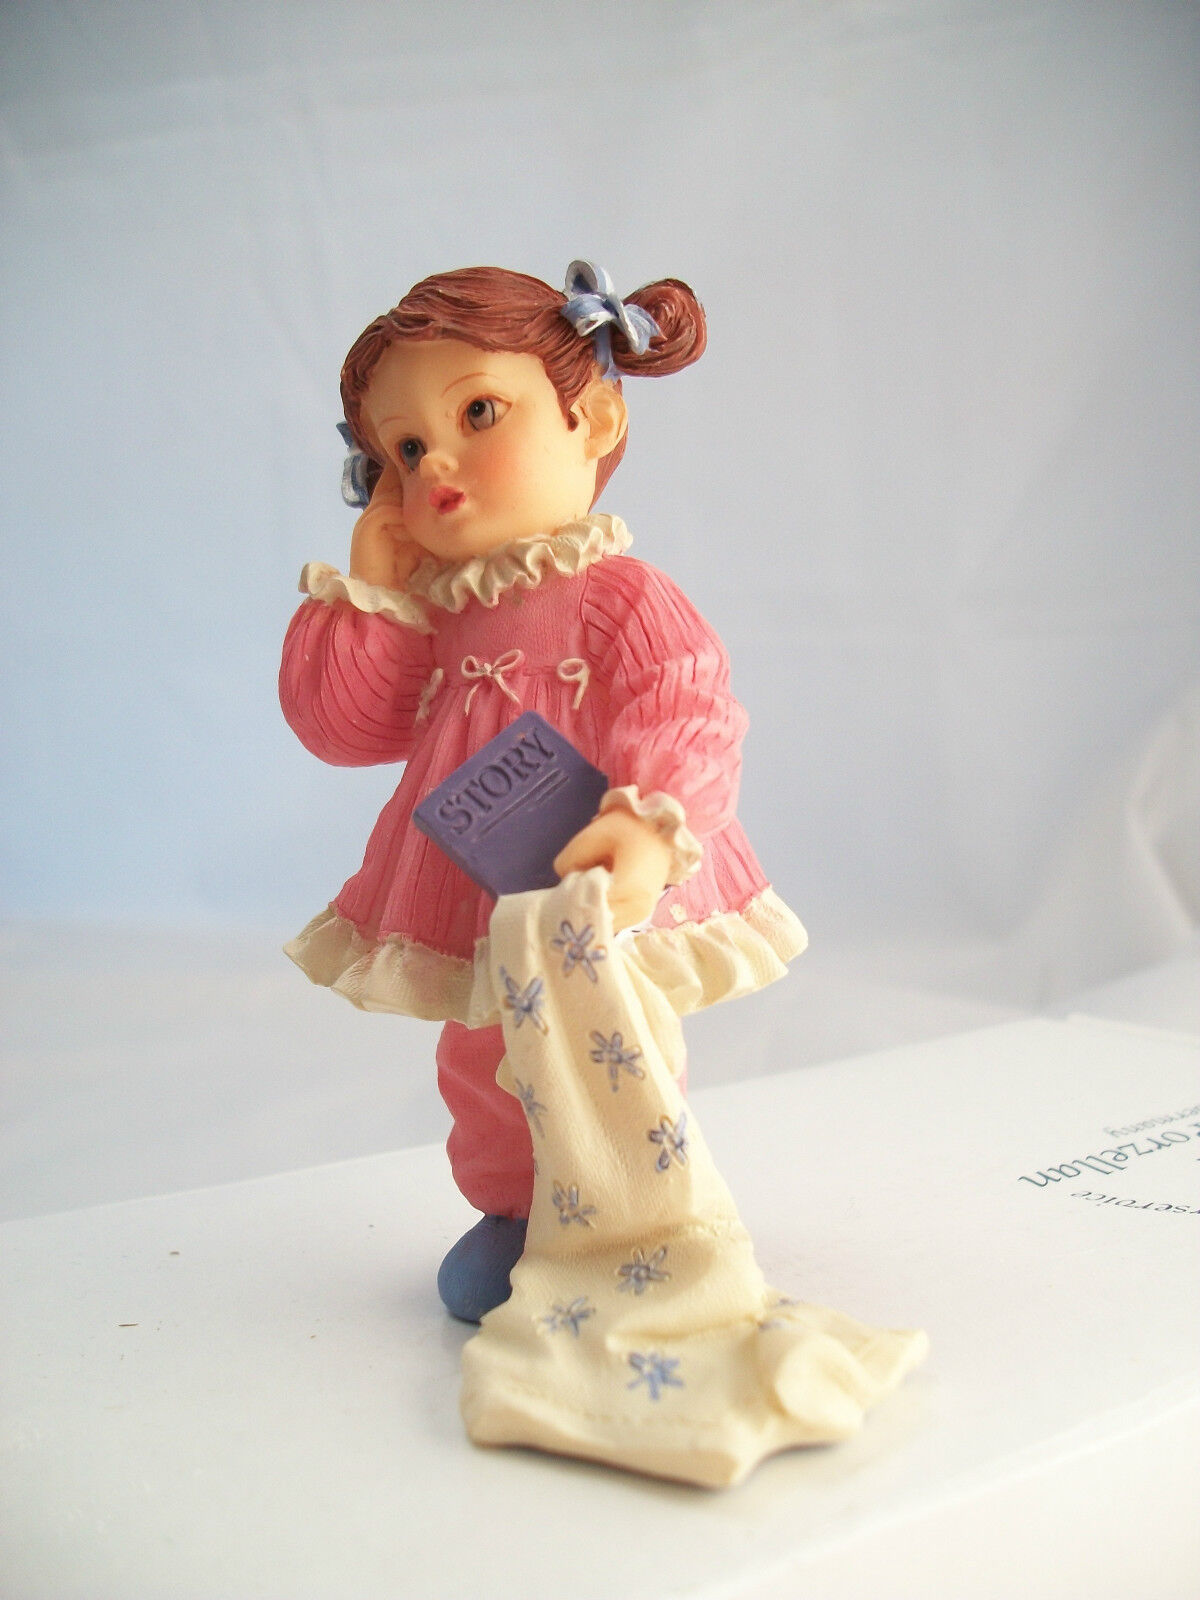 Resin Doll - Peggy (girl In Pajamas) 3098 1/12 Scale Houseworks Figurine